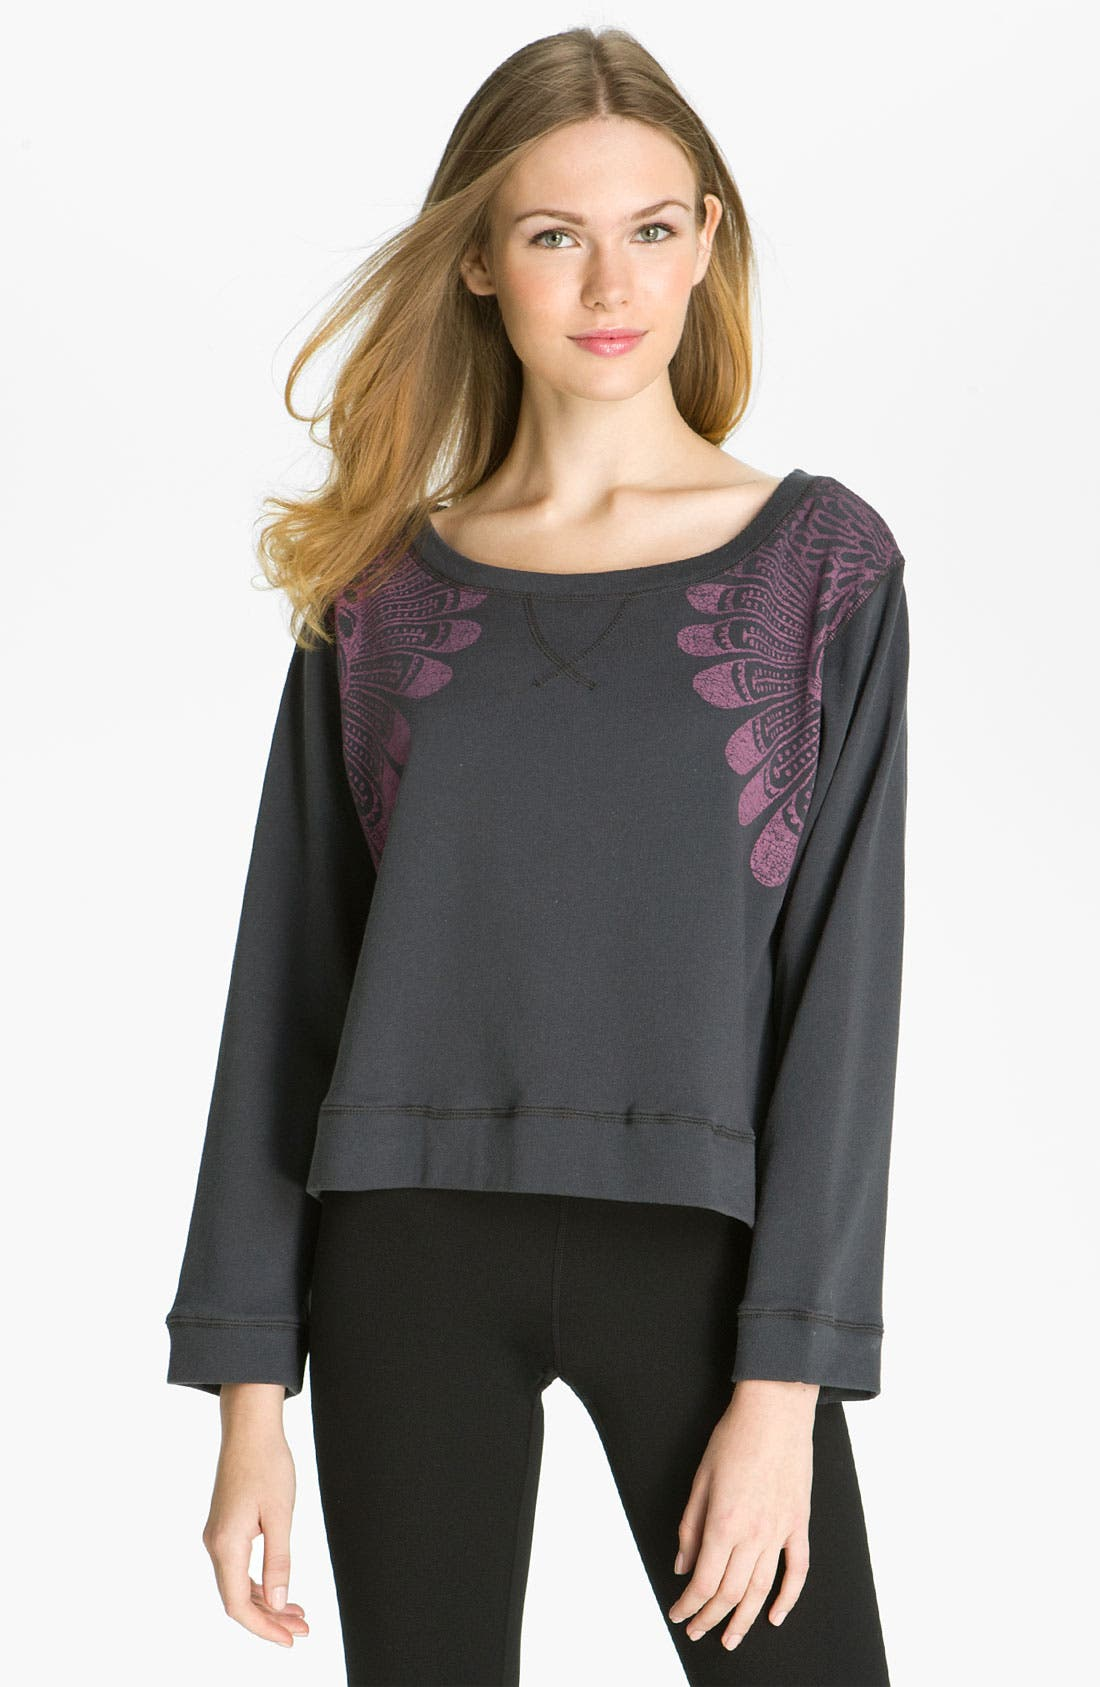 Alternate Image 1 Selected - Steve Madden 'Dream Catcher' Sweatshirt